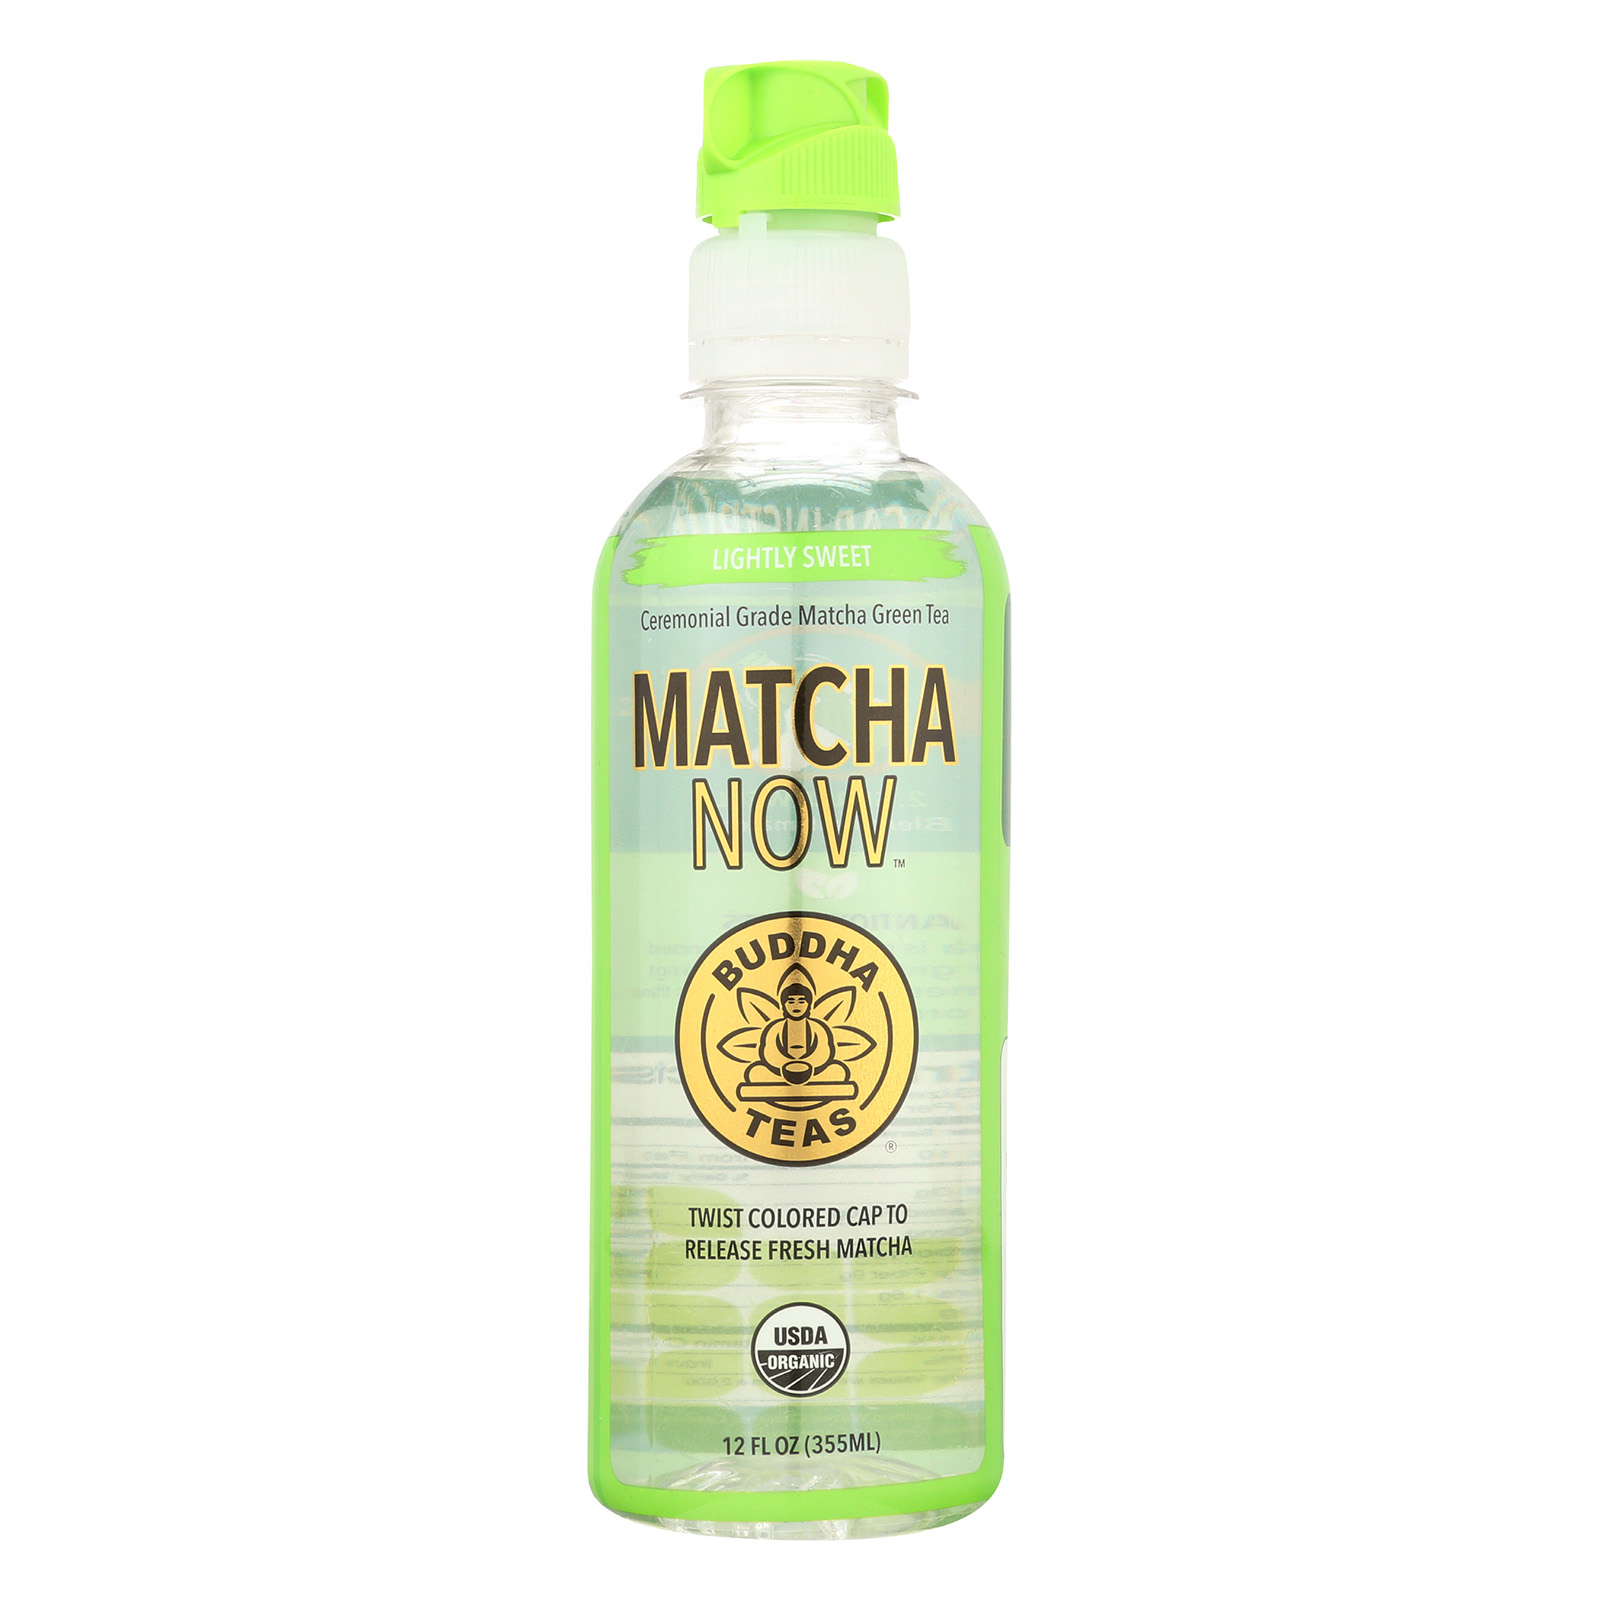 Buddha Teas Matcha NOW Green Tea - Lightly Sweet - Case of 12 - 12 oz.